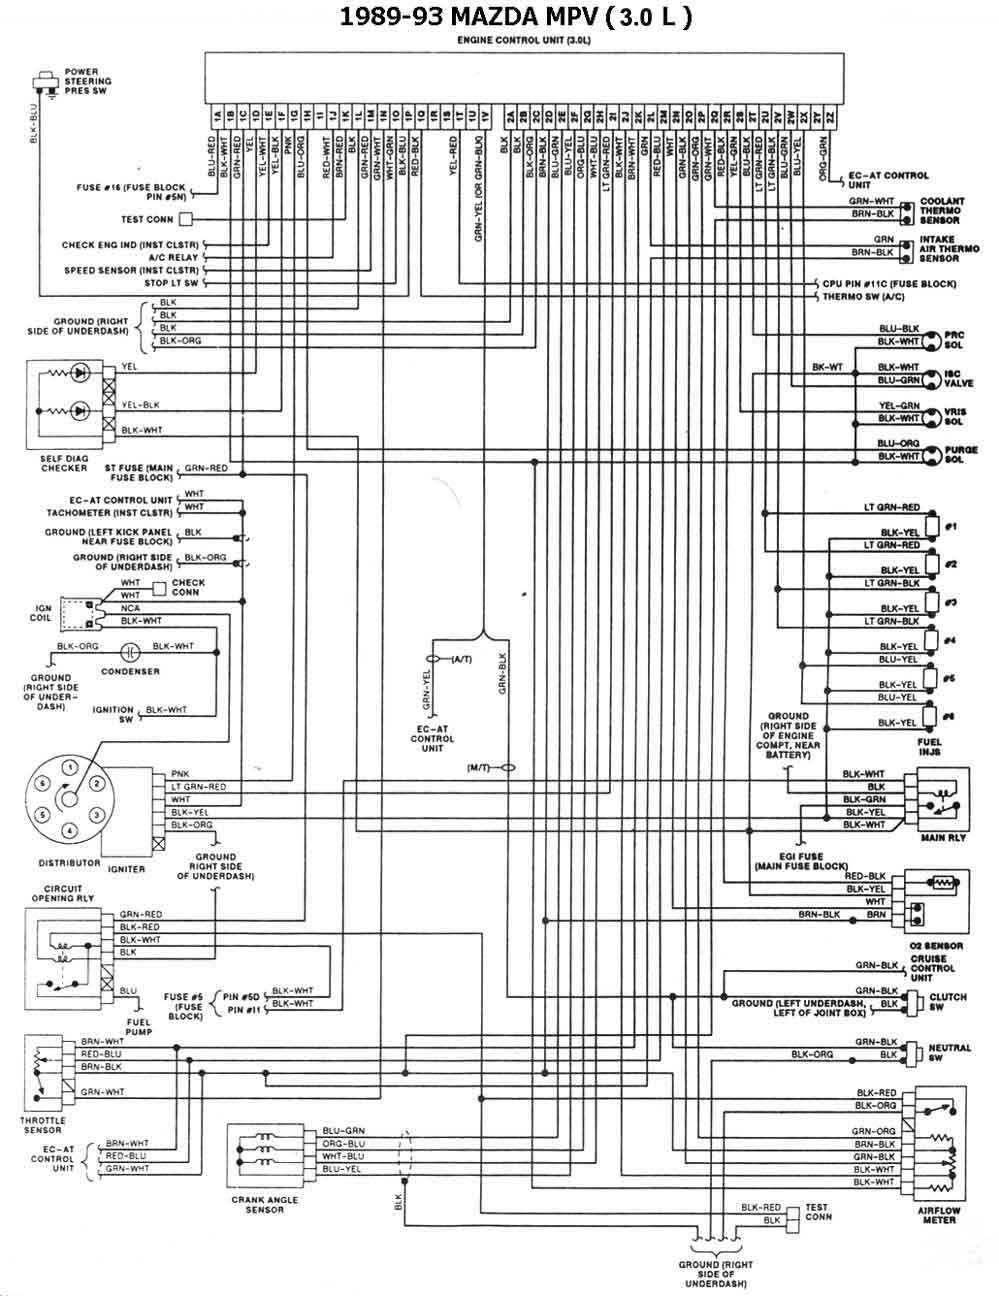 Awesome Mazda Bongo Wiring-diagram Gallery - Best Image Wiring ...